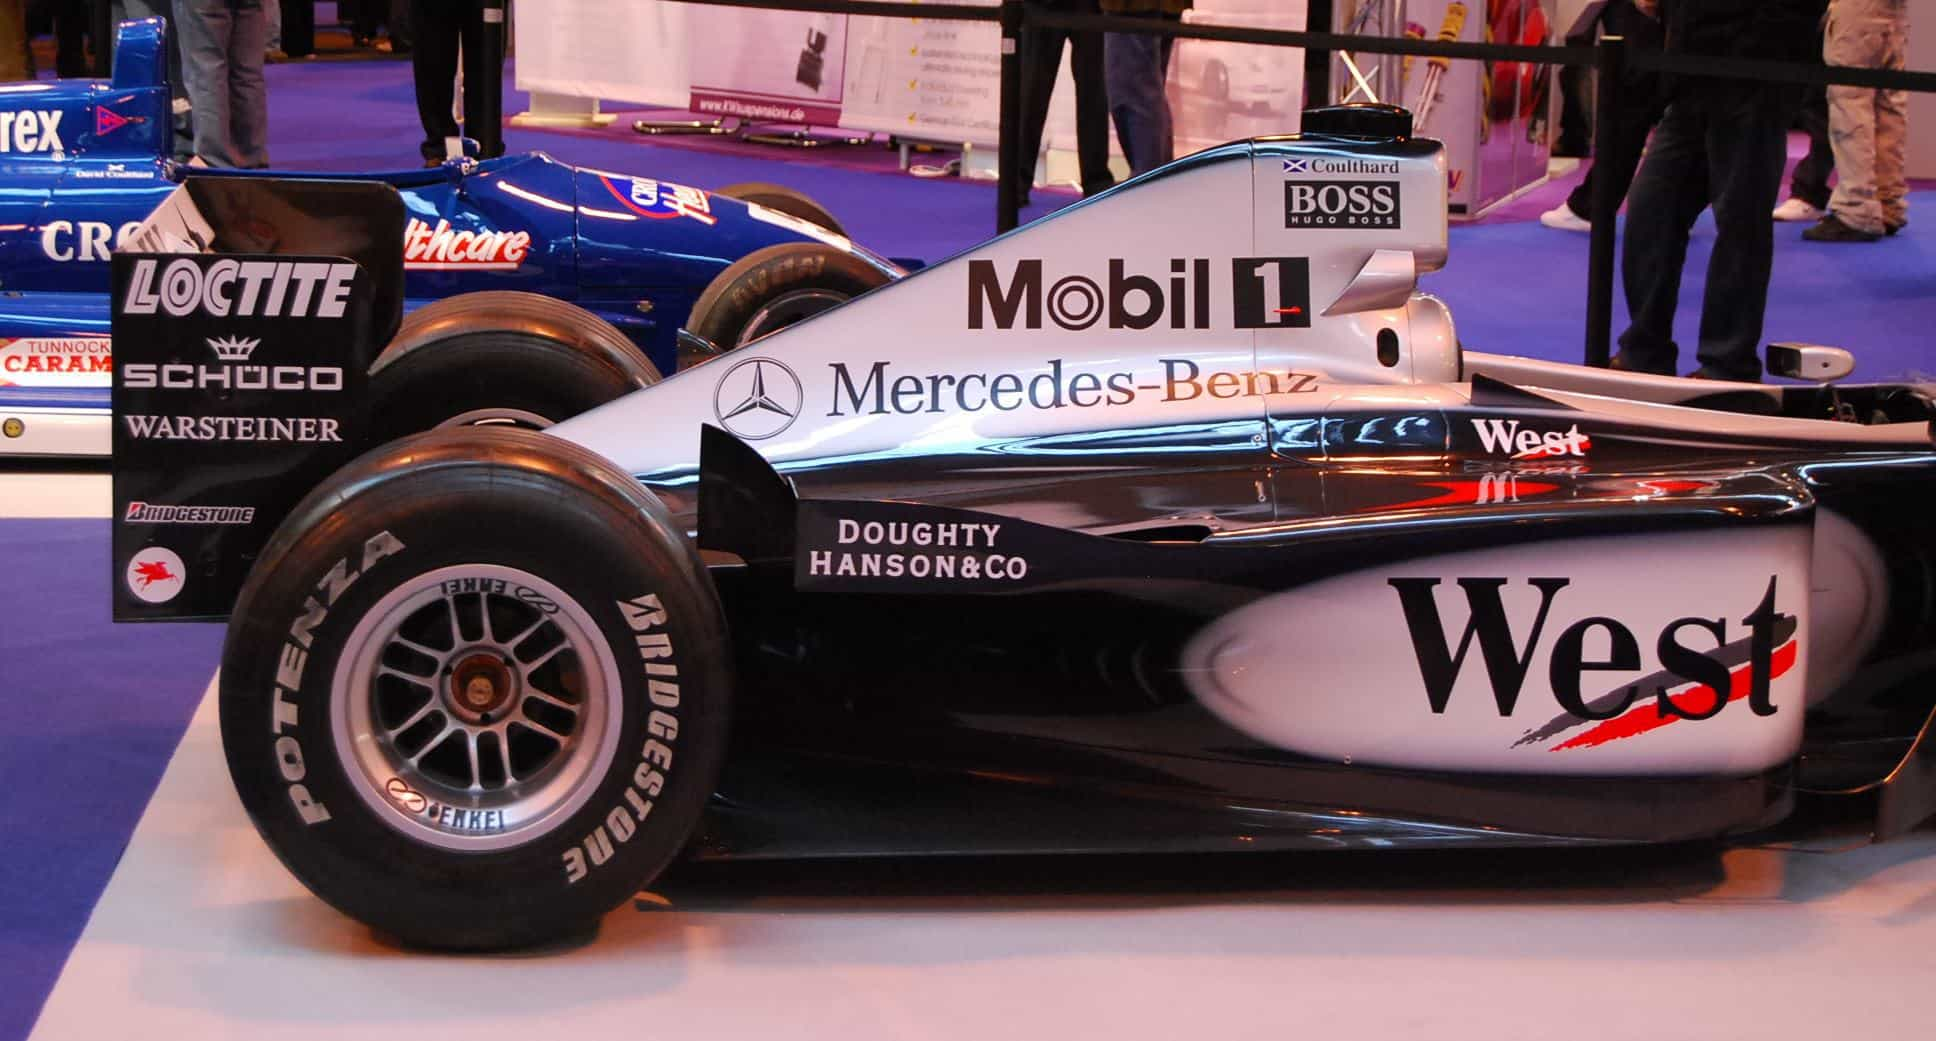 Coulthard McLaren MP4-15 F1 2000